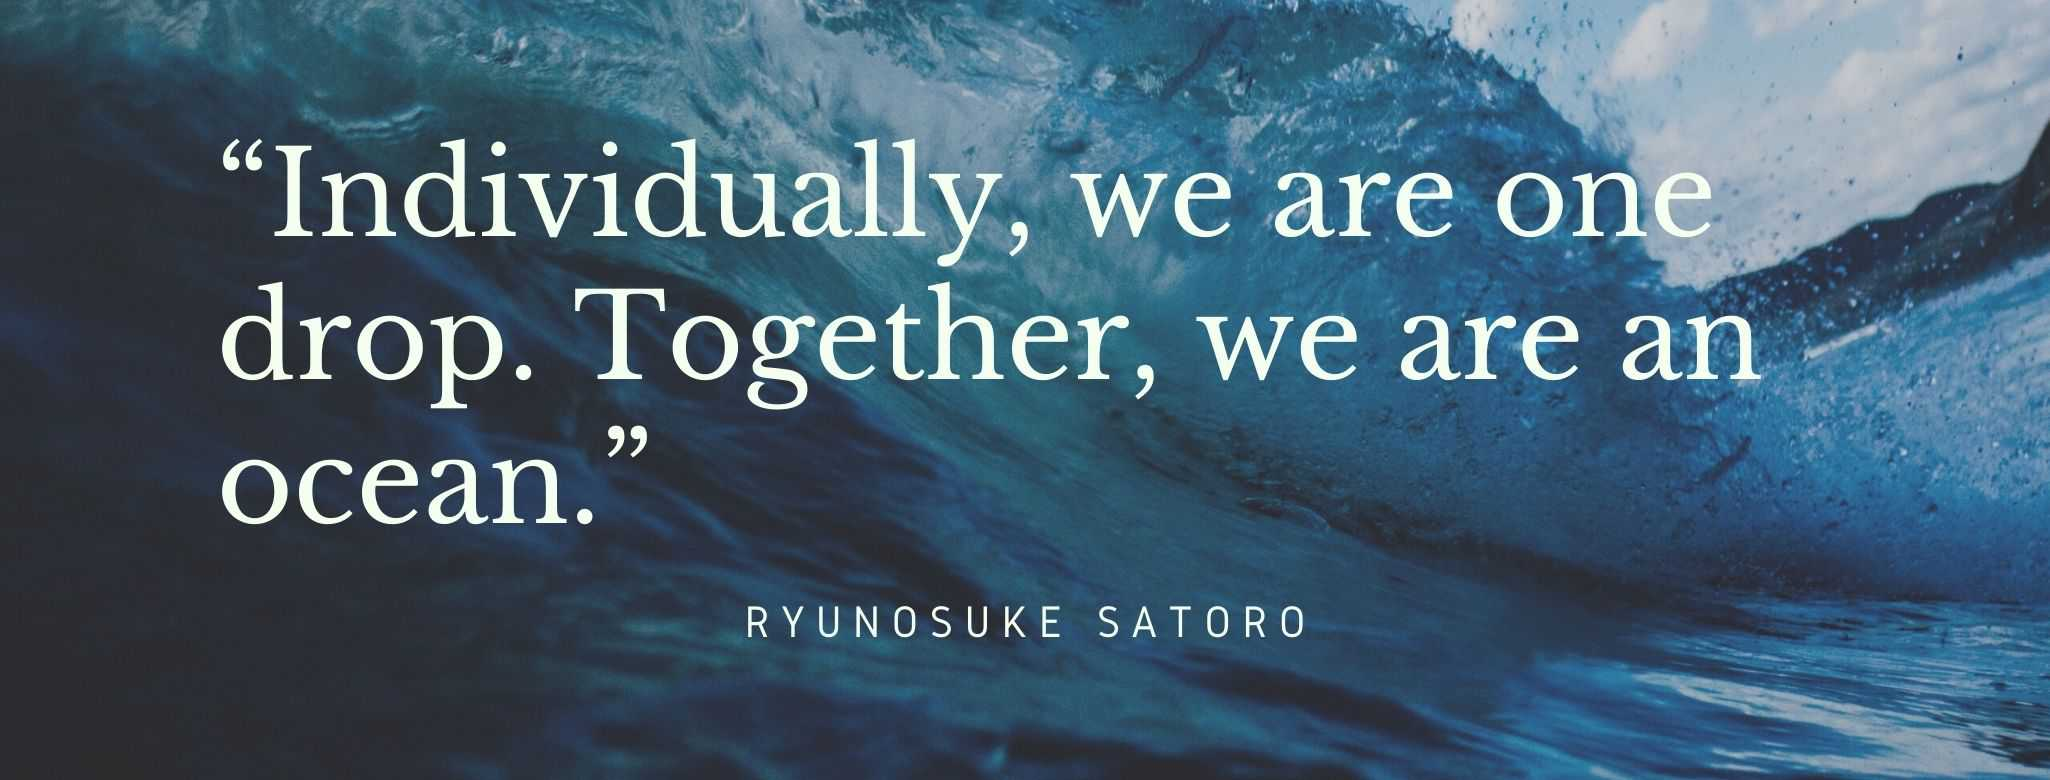 """""""Individually, we are one drop. Together, we are an ocean."""" Quote: Ryunosuke Satoro"""